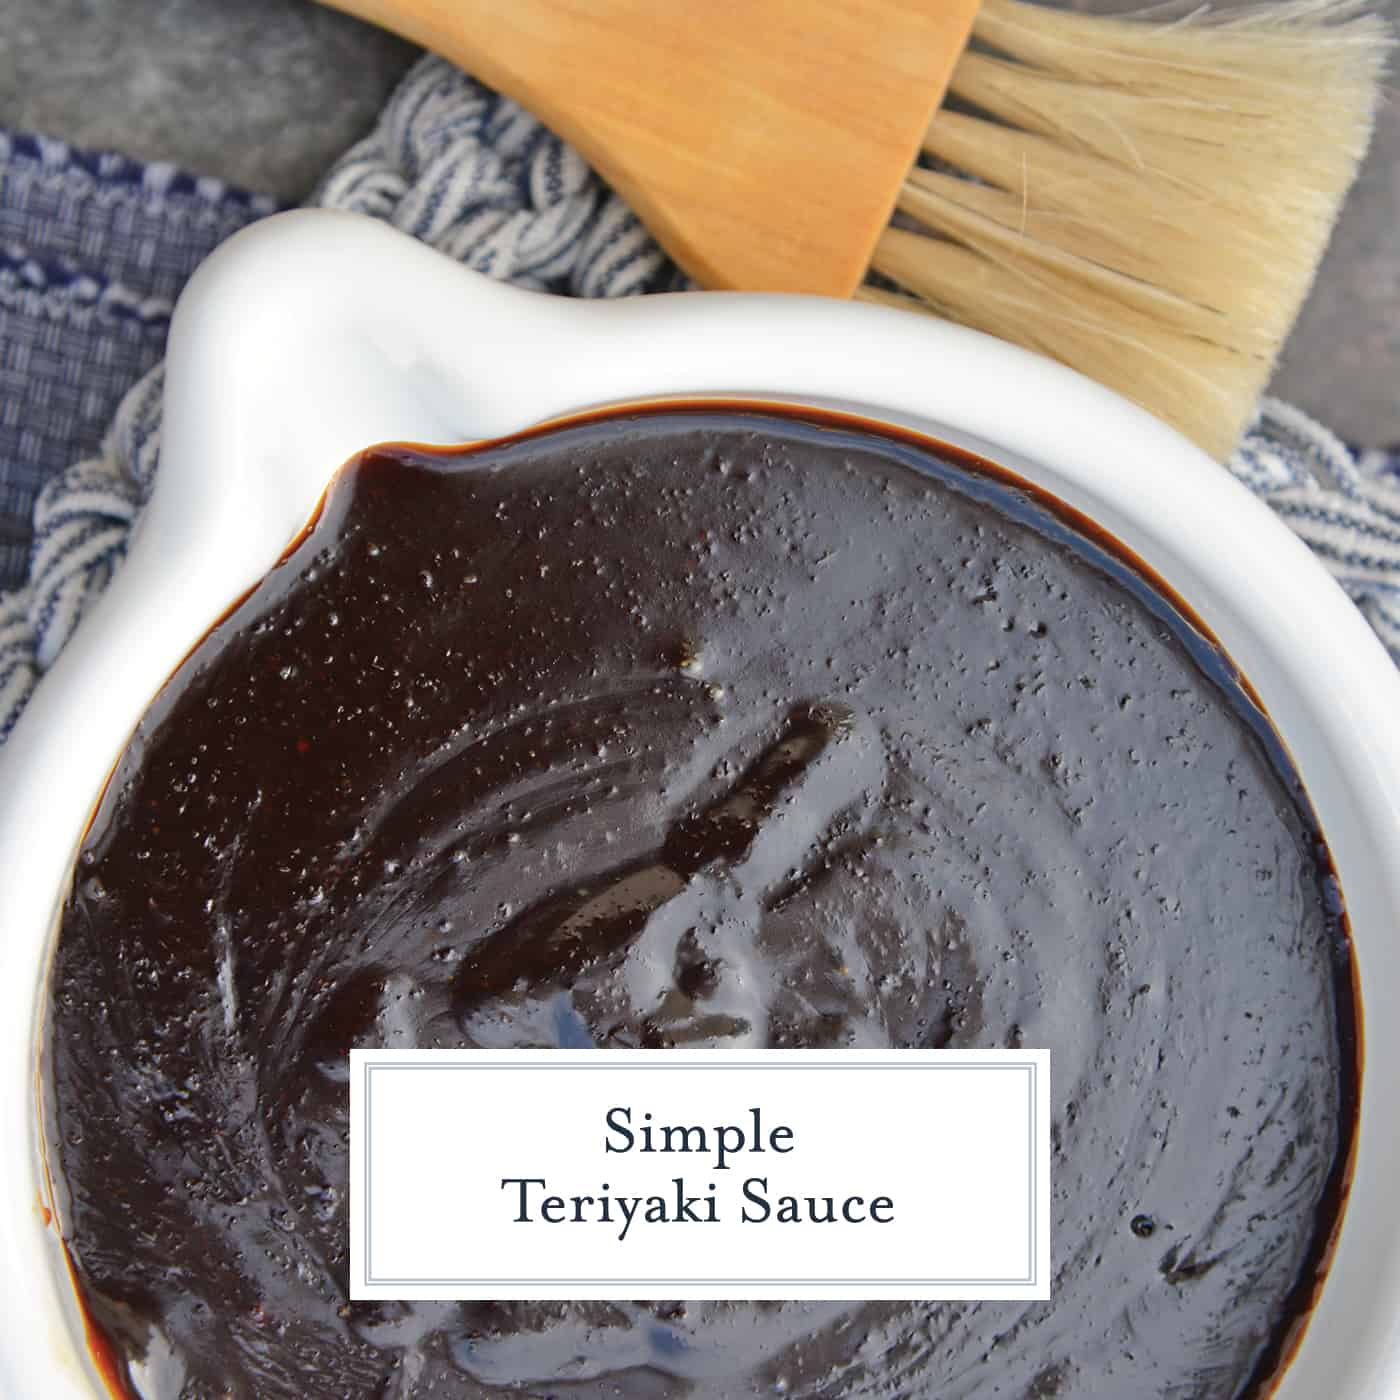 Teriyaki Sauce can be made into an easy teriyaki marinade or glaze. Perfect for teriyaki chicken, easy stir fry recipe or even making homemade beef jerky. #teriyakisauce #chickenteriyaki www.savoryexperiments.com